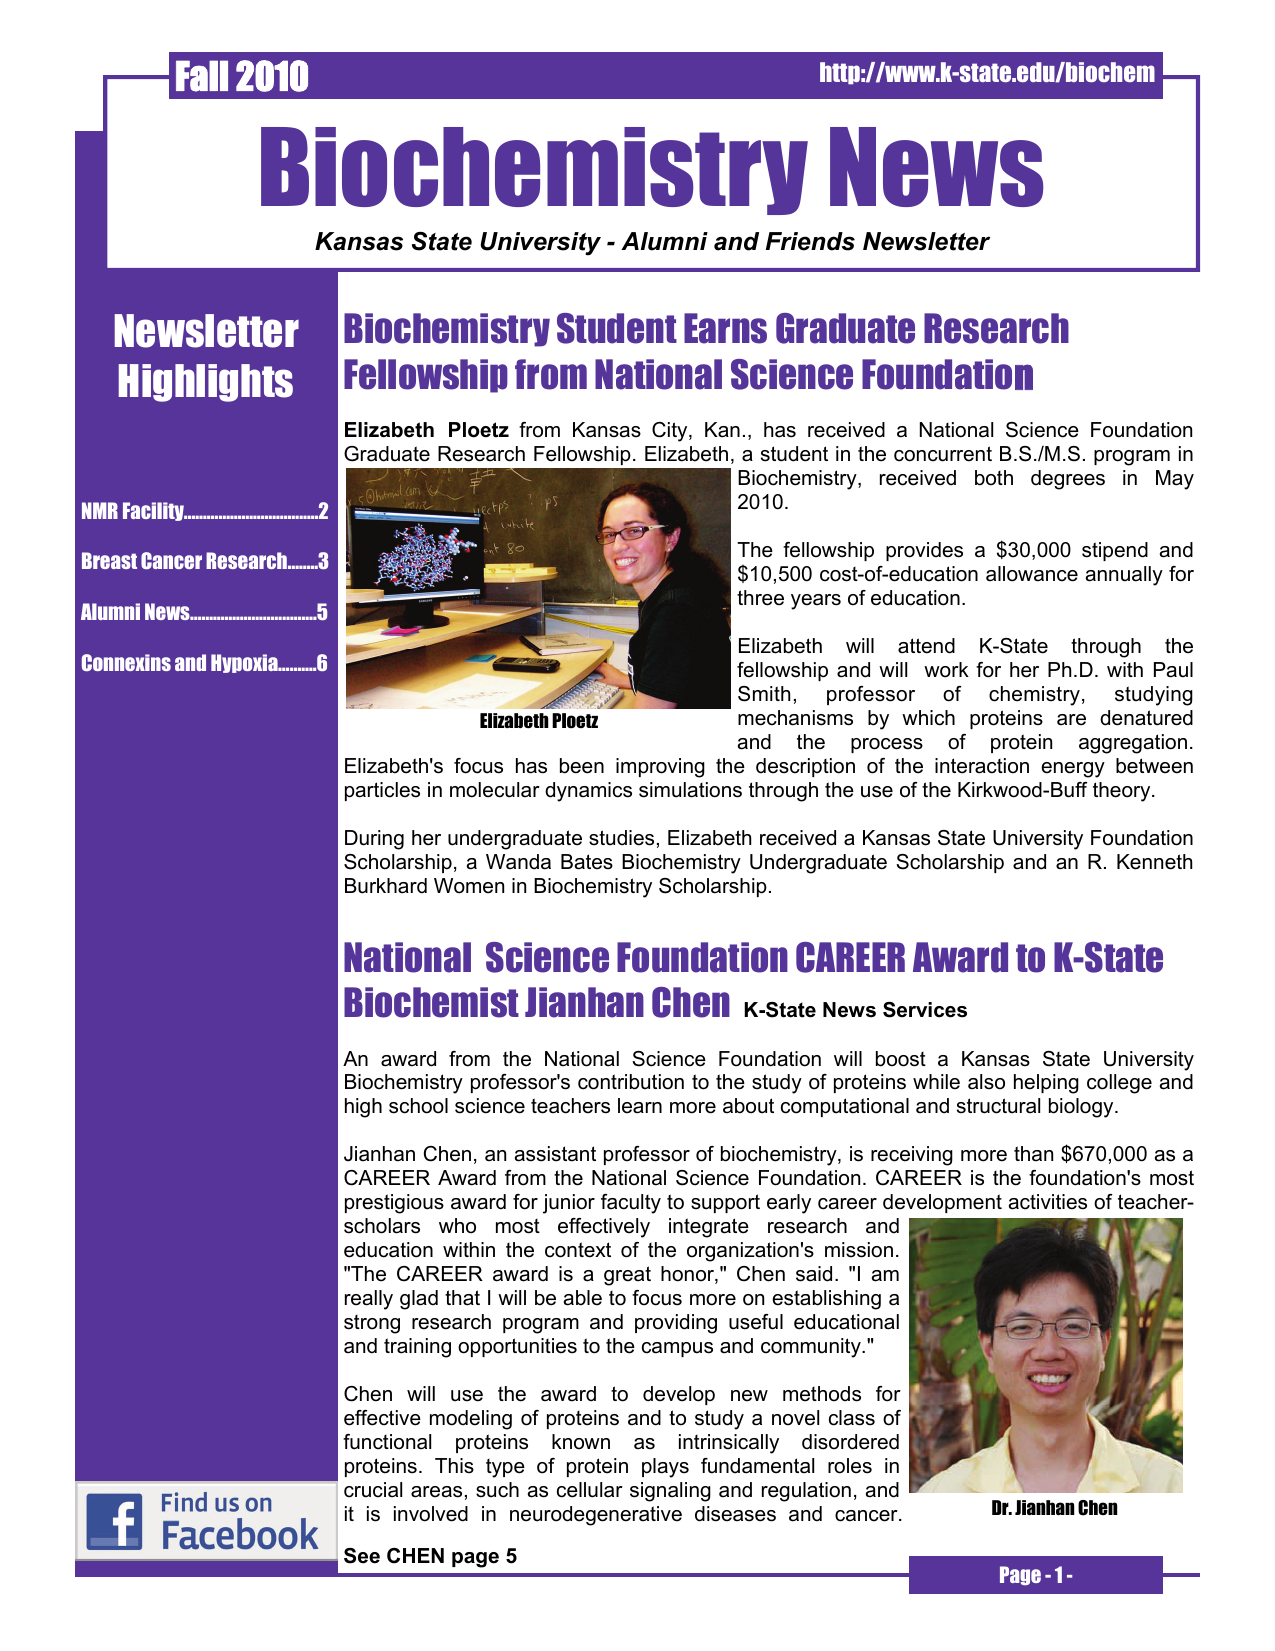 biochemistry news newsletter highlights